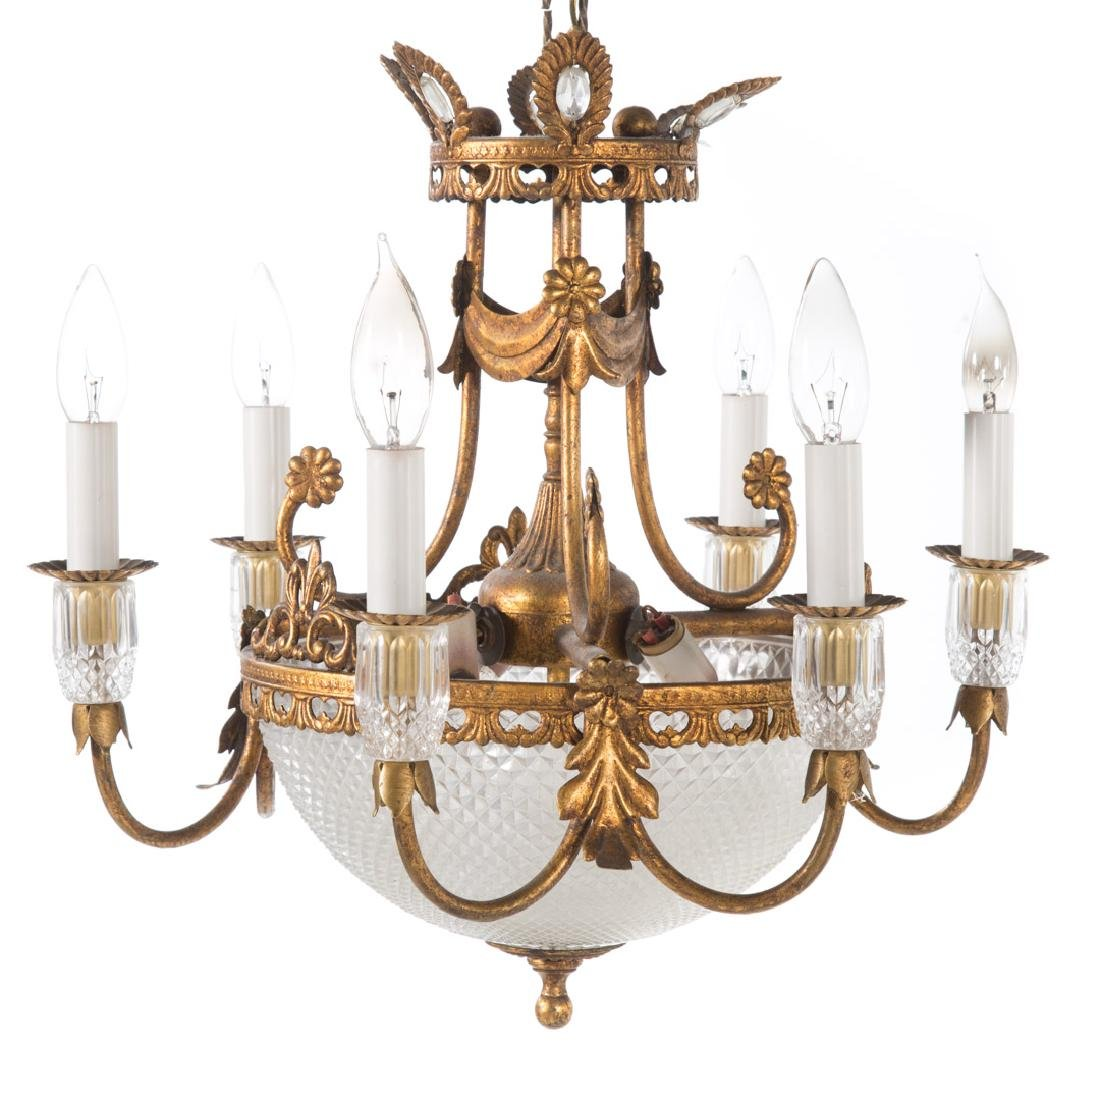 Empire style gilt metal six light chandelier - 2